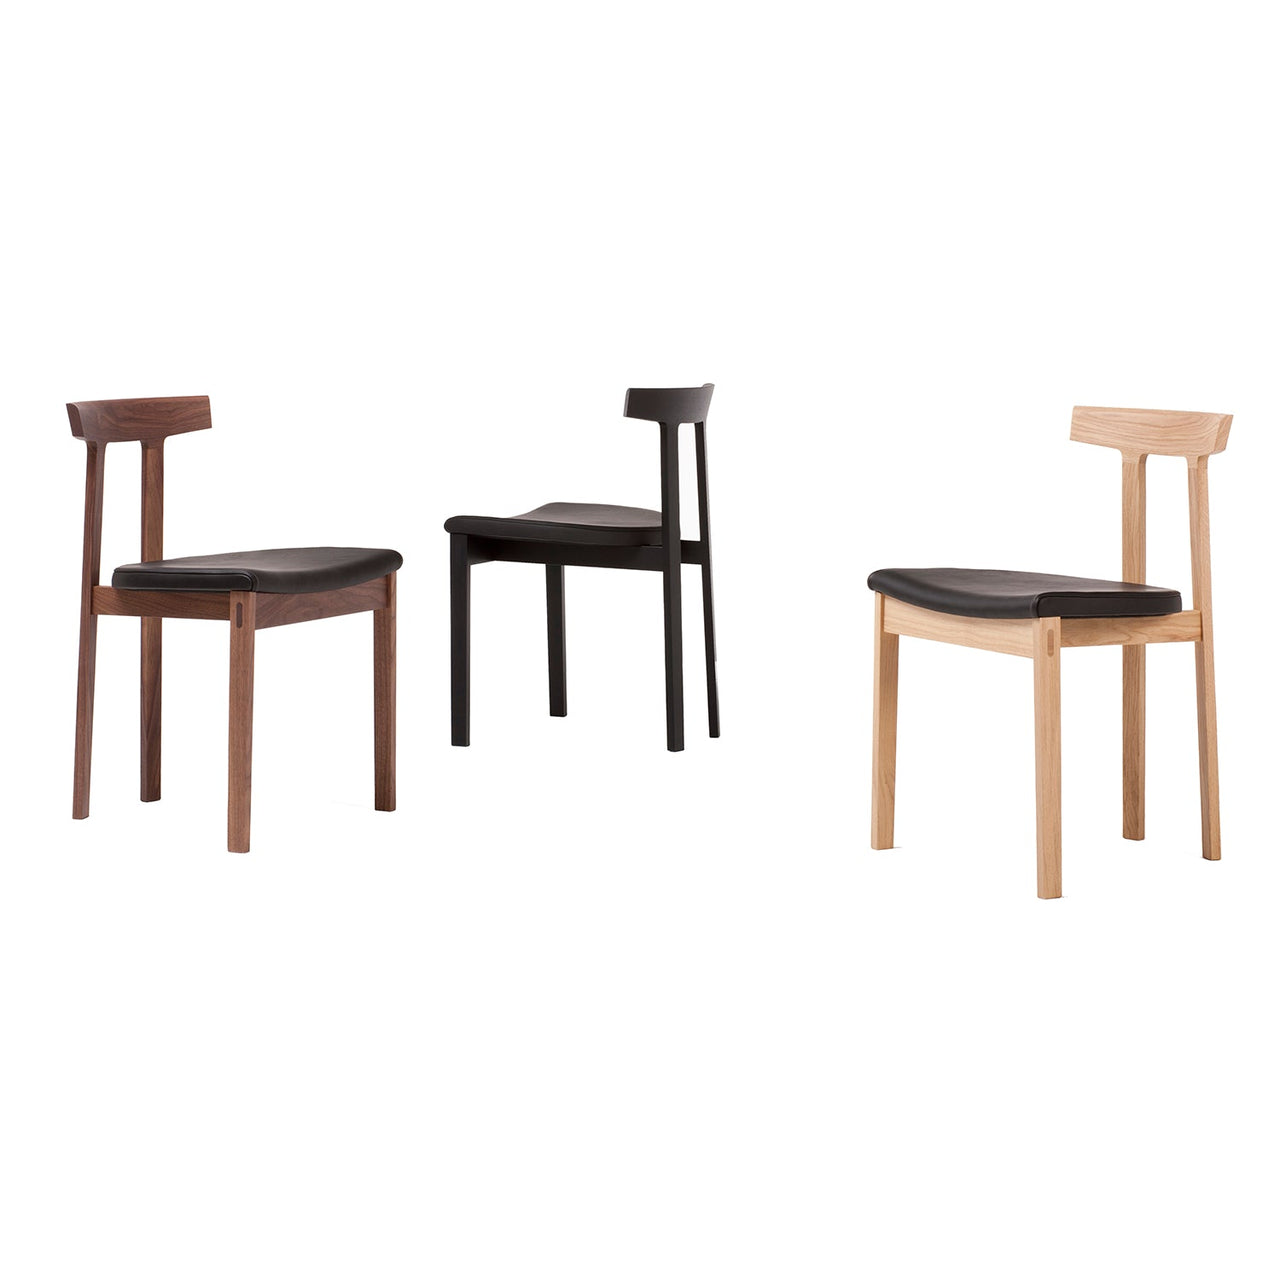 Torii Chair: Upholstered